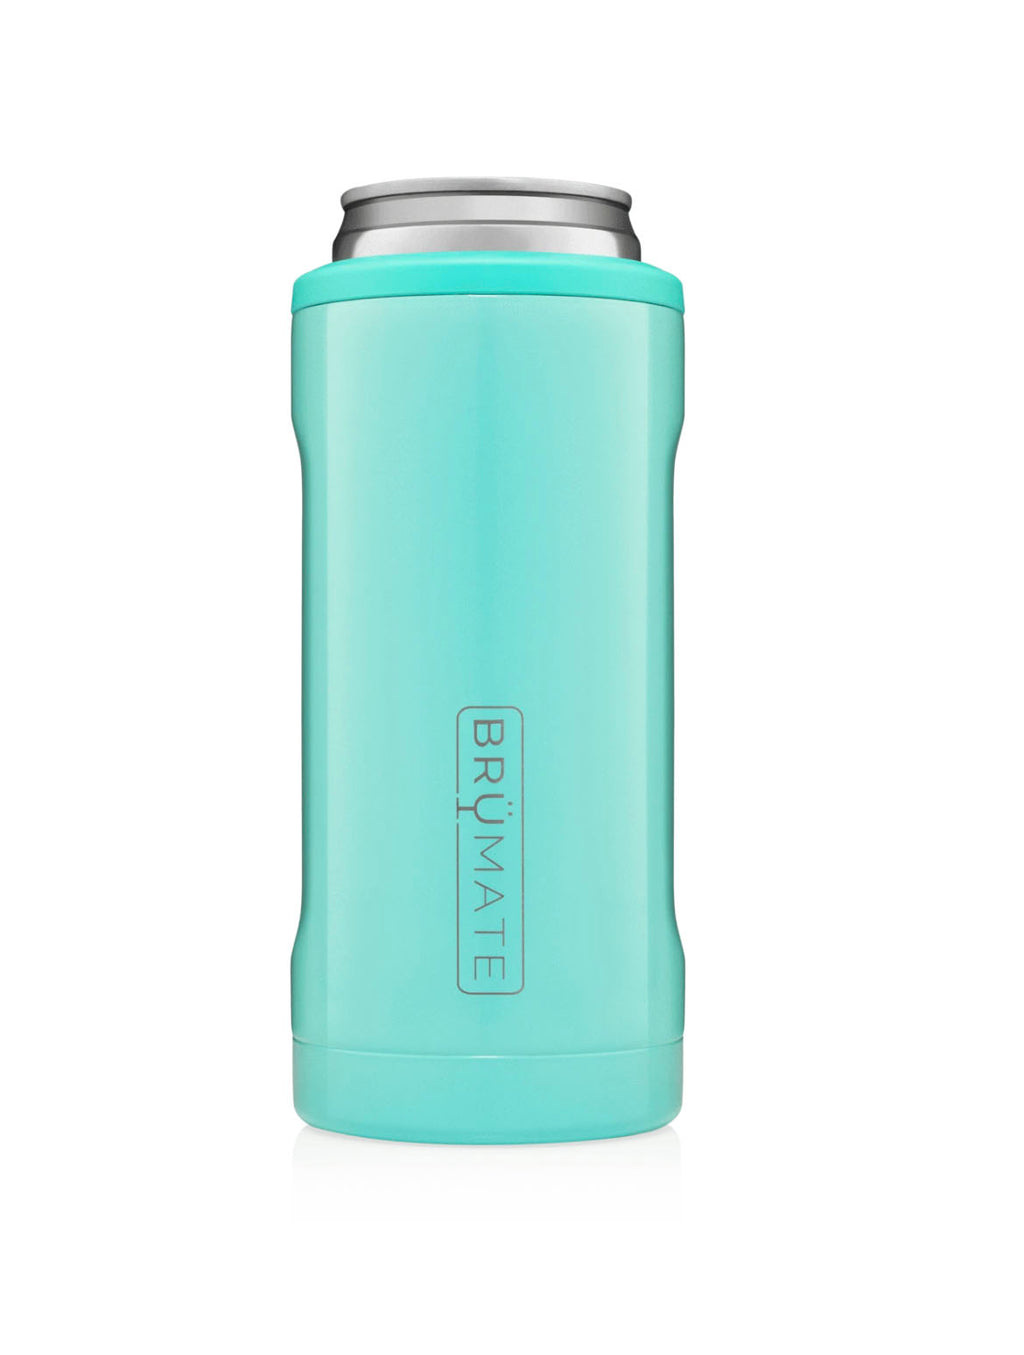 BrüMate Hopsulator Slim in Aqua